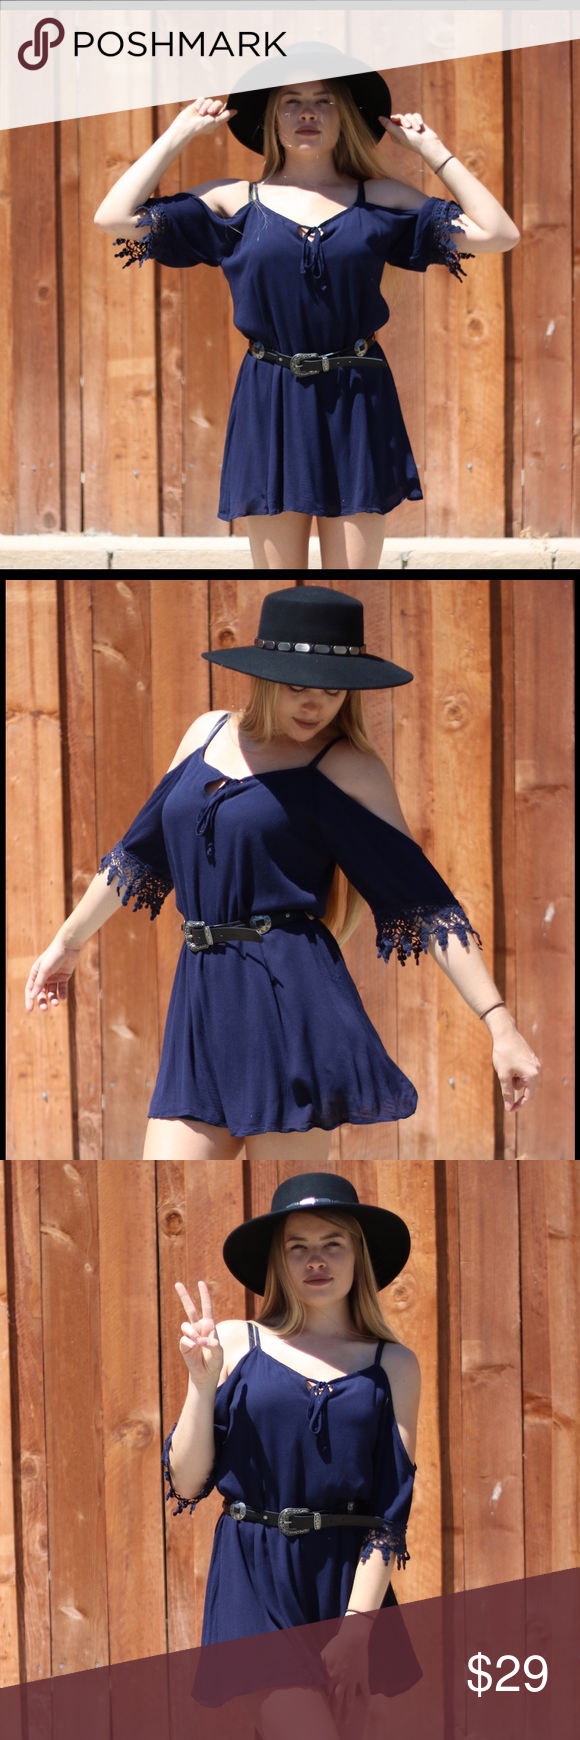 Navy off the shoulder mini Yes fall is apon us, but this number is to cute to pass up. This navy blue of the shoulder dress can play two roles in your wardrobe. While the sun is still giving us summer heat throw on your cute ankle boots and have fun in the sun. Once the chill hits the air put on some fitted flares or tights and wear this cookie as a top. Model is wearing a small. Dresses Mini